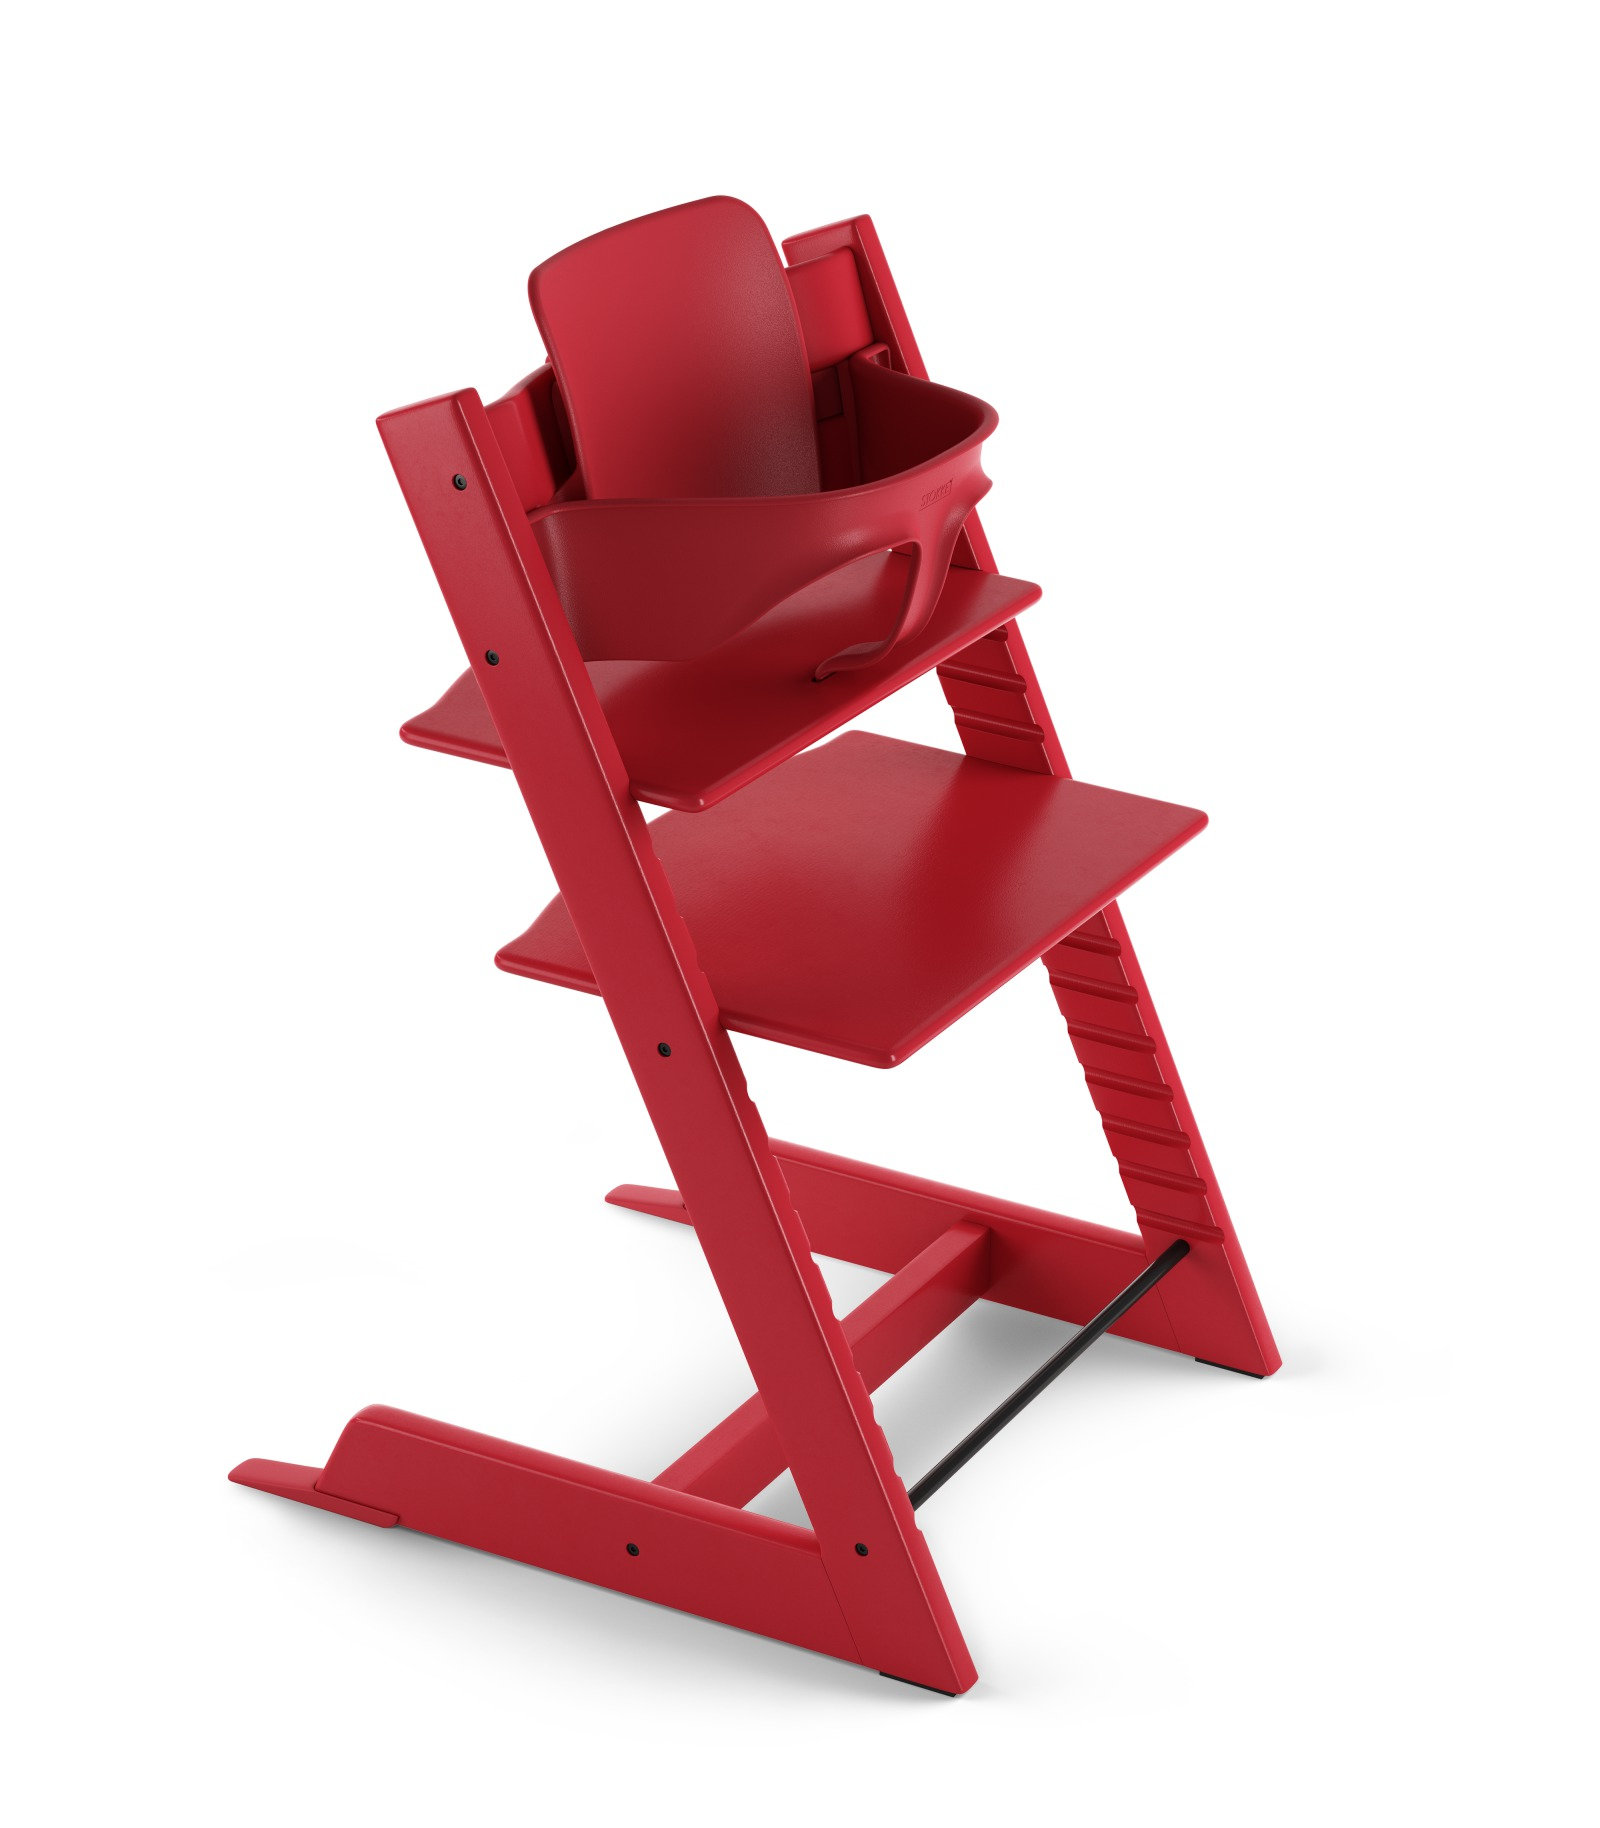 Tripp Trapp® Chair Red, Beech, with Baby Set. 3D rendering.